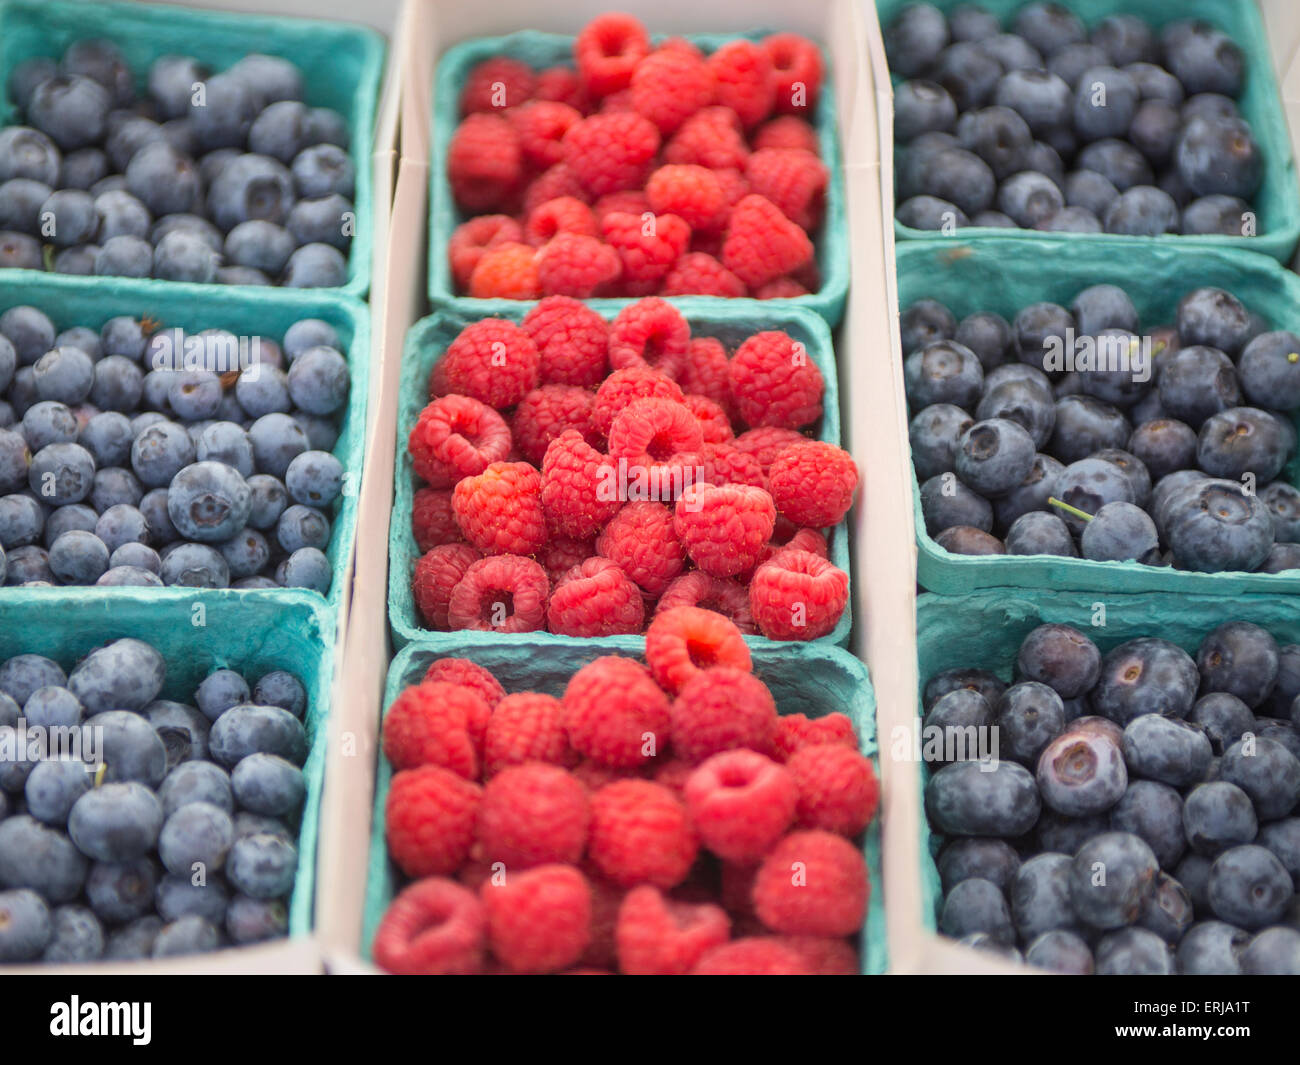 Raspberries and Blueberries - Stock Image